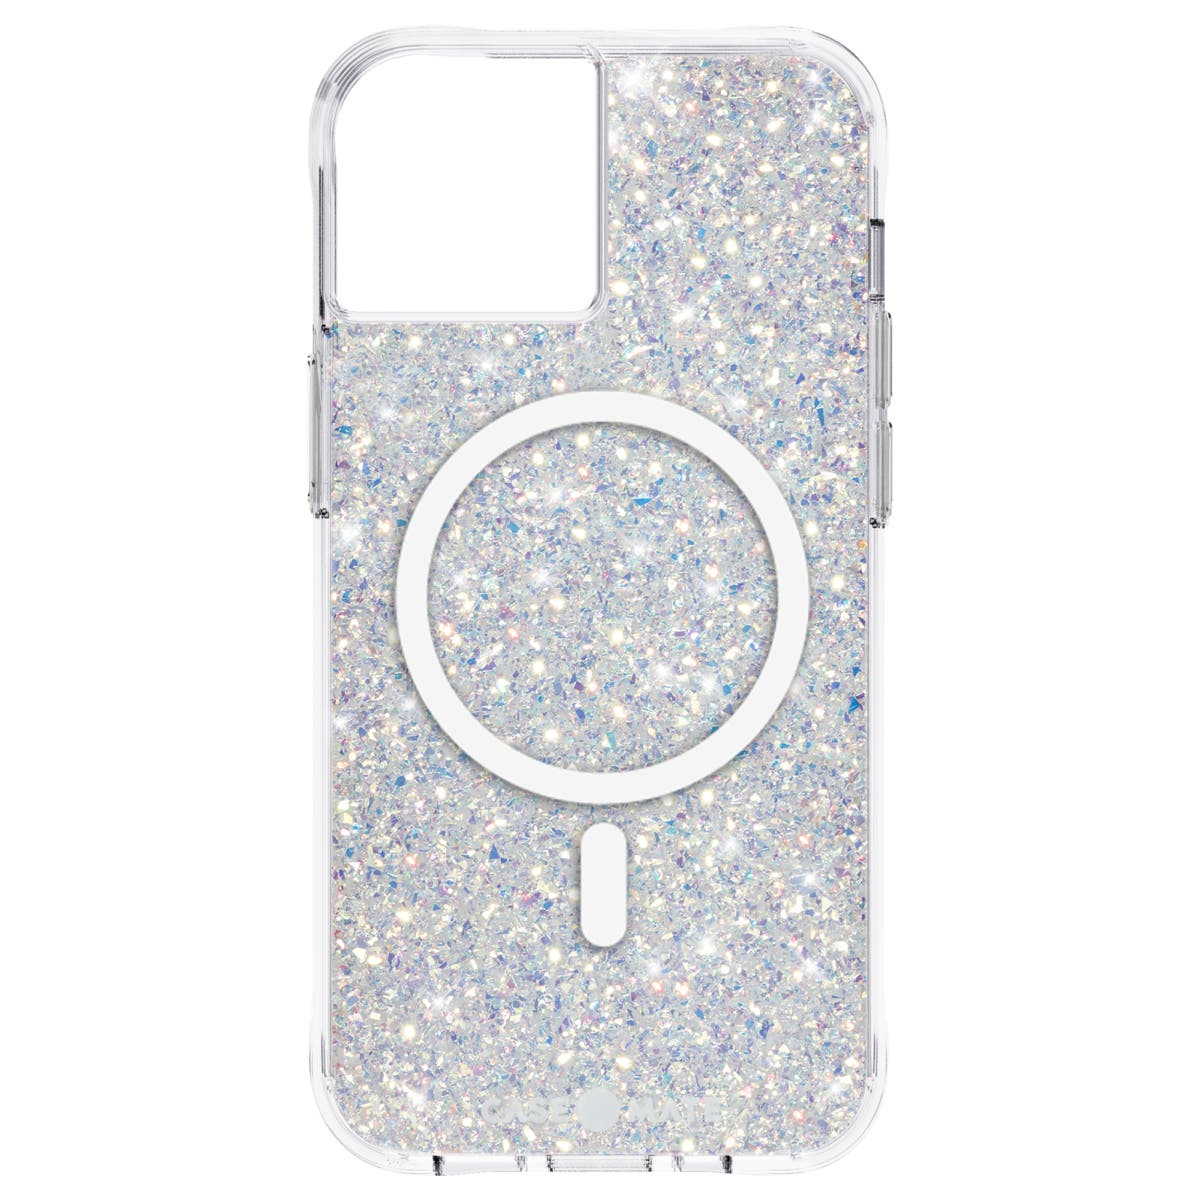 Case Mate Twinkle Stardust MagSafe Case for iPhone 13 Pro - Stardust